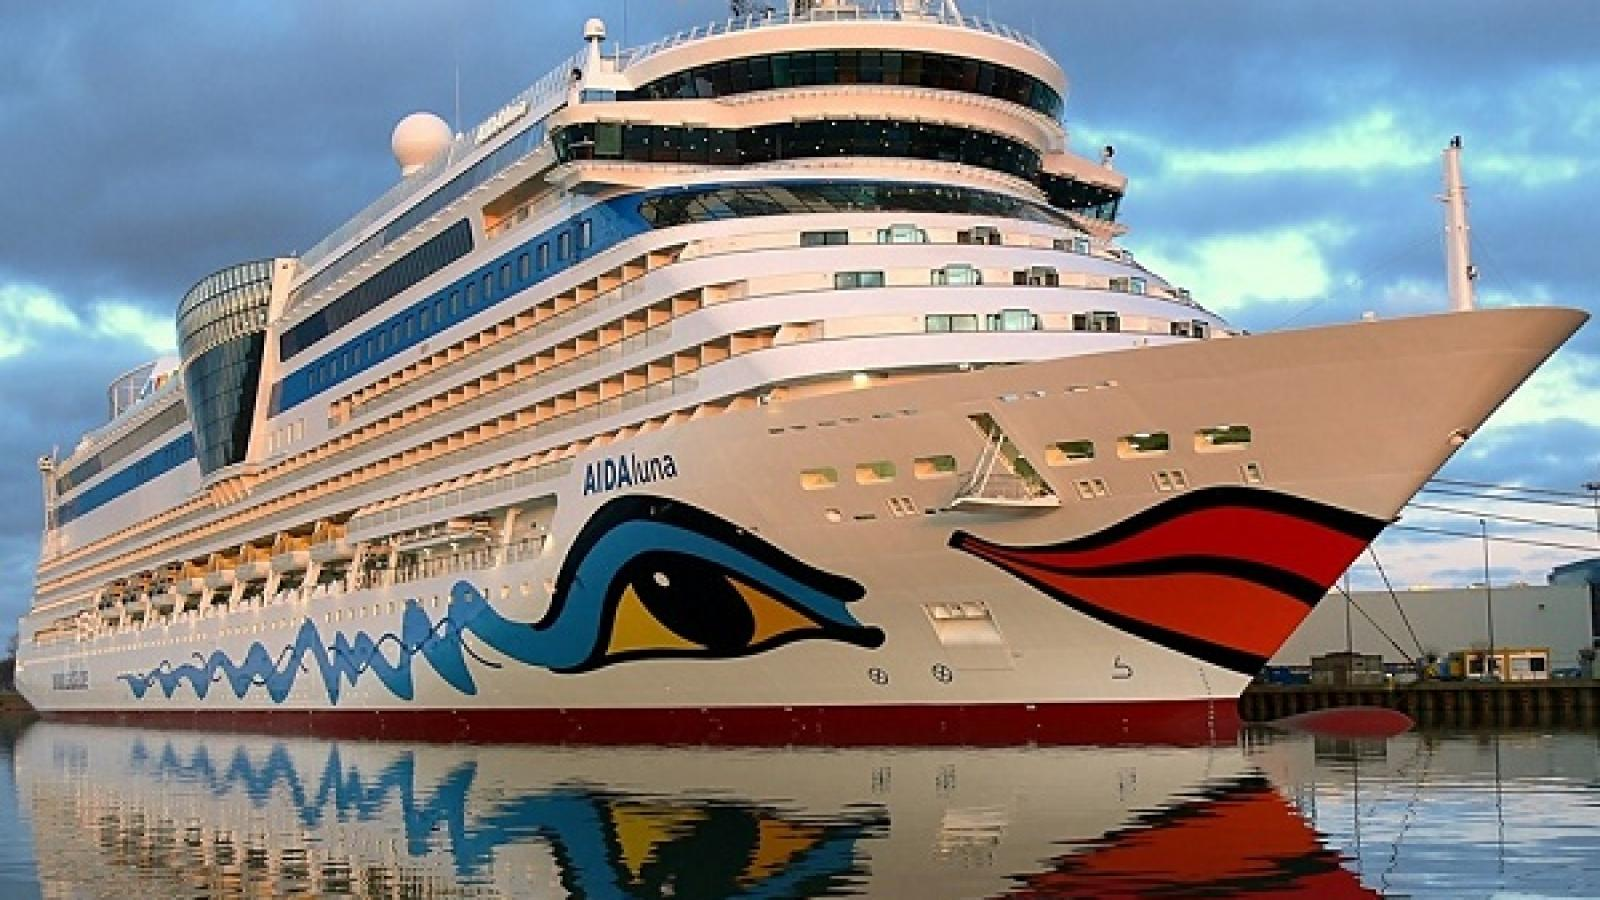 AIDAluna Cruise Ship